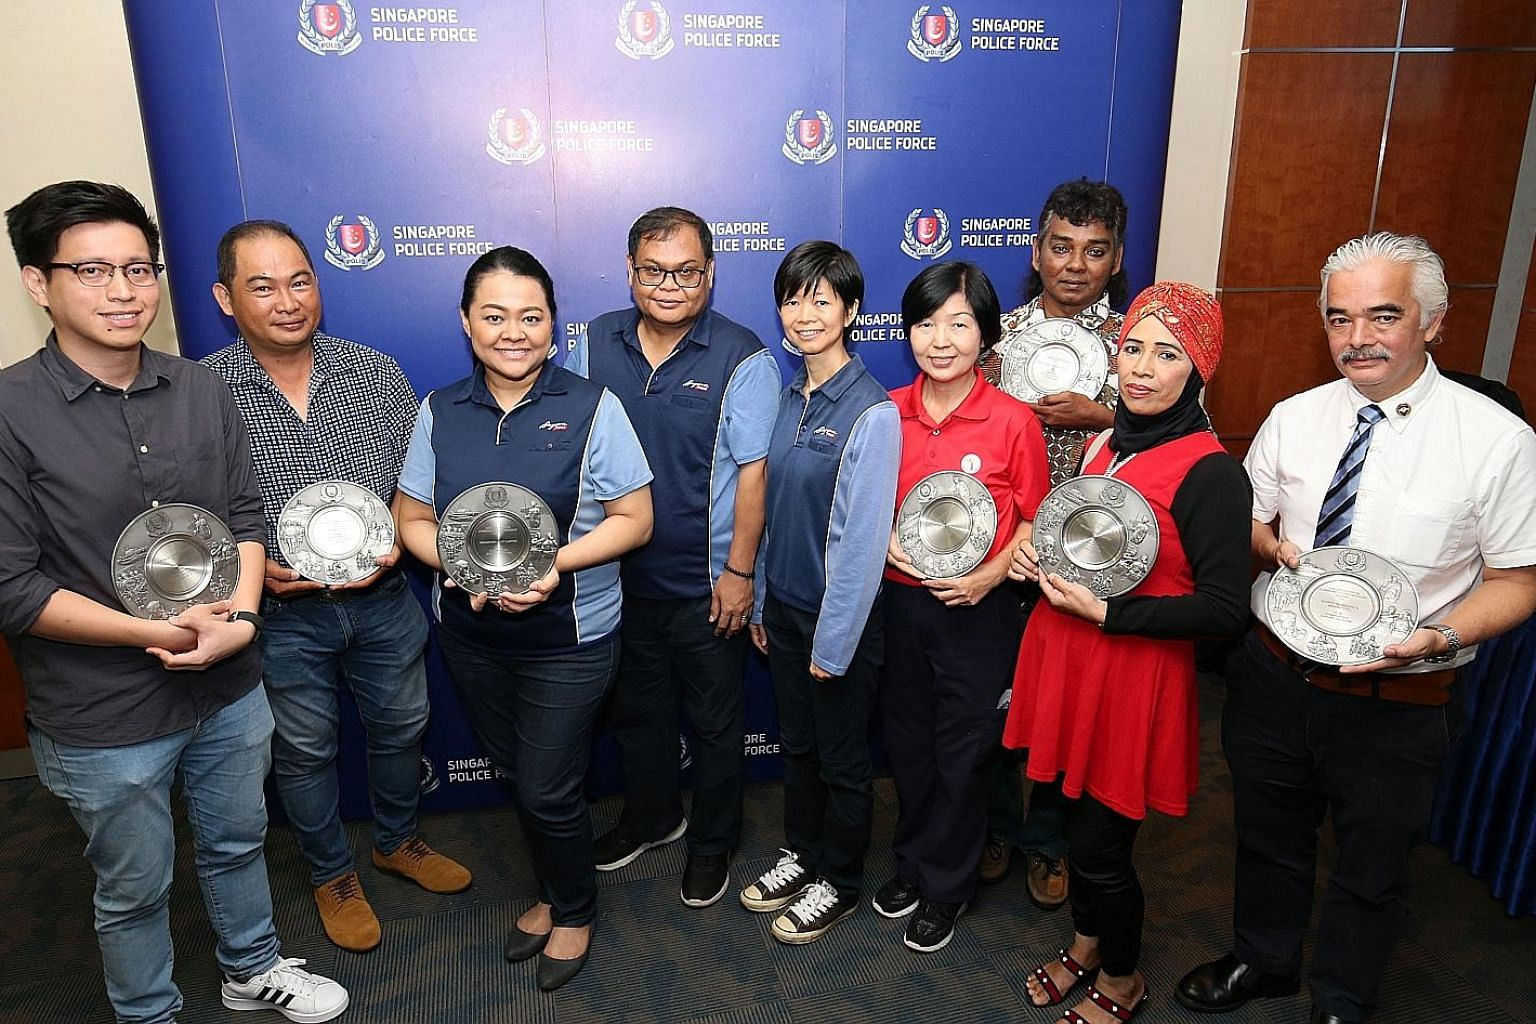 Receiving the awards yesterday were (from left): Mr Edmund Shao; Mr Tan Kay Huat, who helped to stop a man from stealing cash cards from vehicles; SingPost's Nora Yasmin Mohamed Zain, Tahir Saleh and Lee Mei Chan; Ms Winnie Tan, with Mr Abdul Hamid A